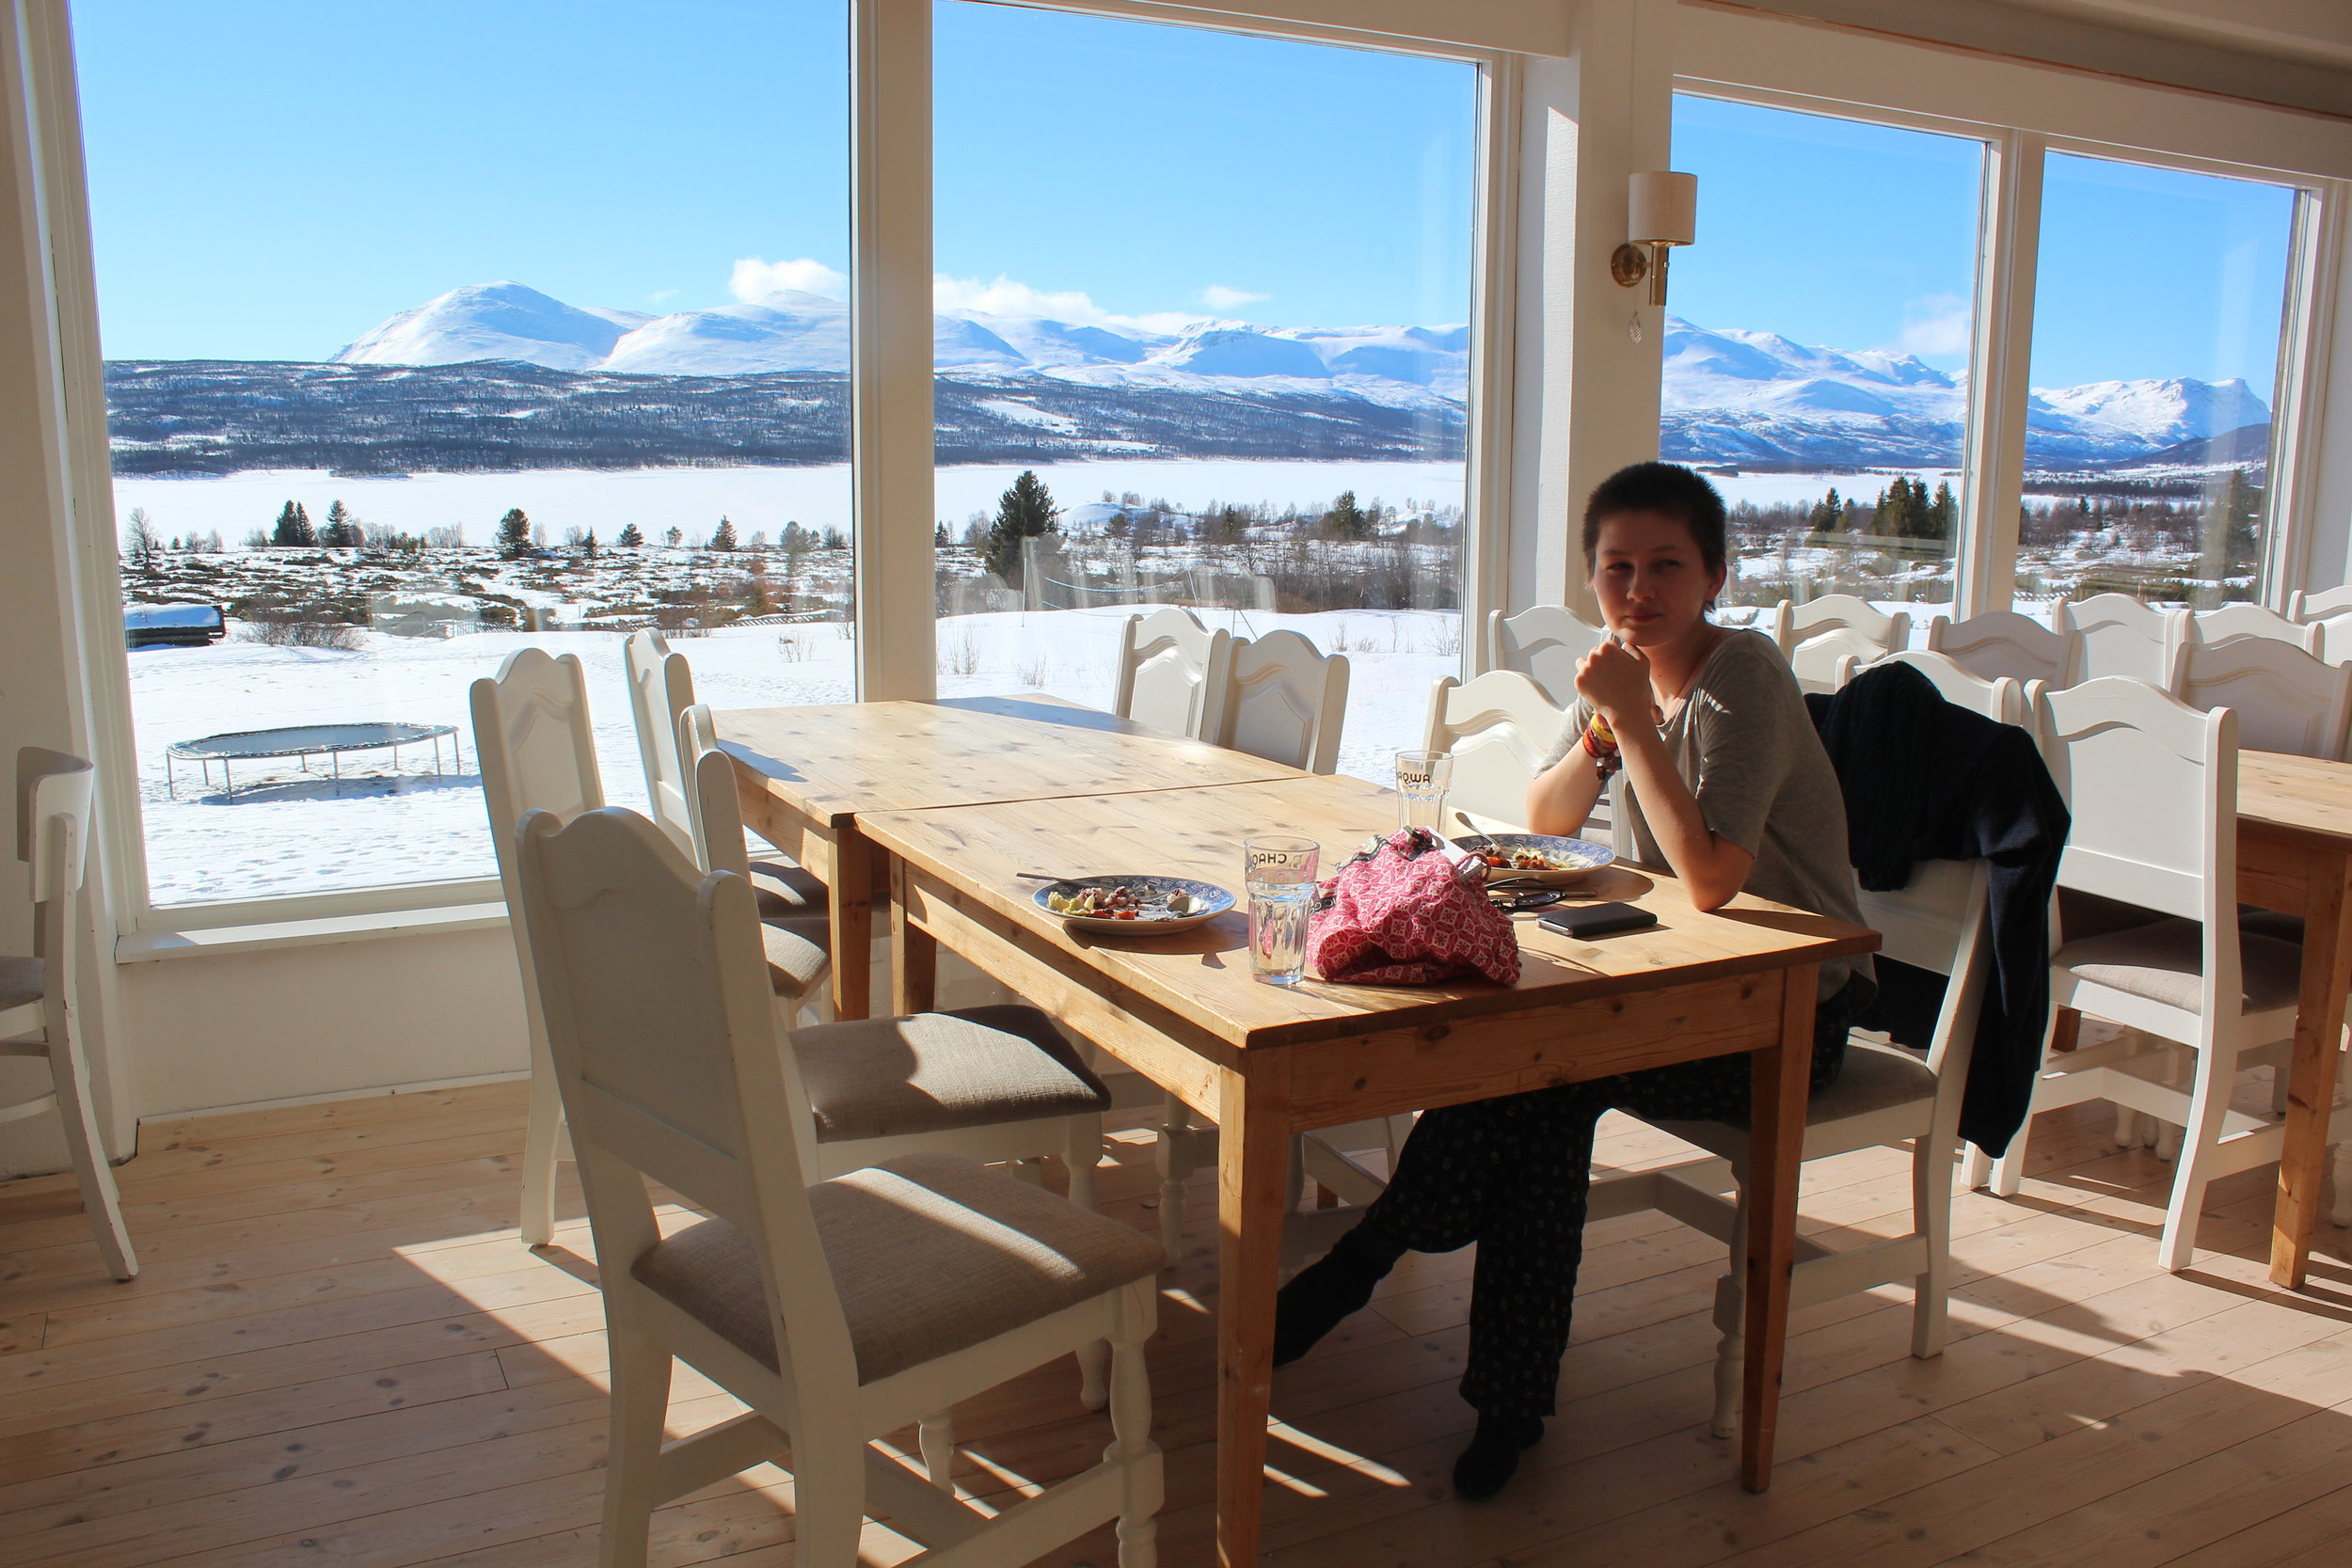 Lunch with a view. Nøsen serves vegetarian food.